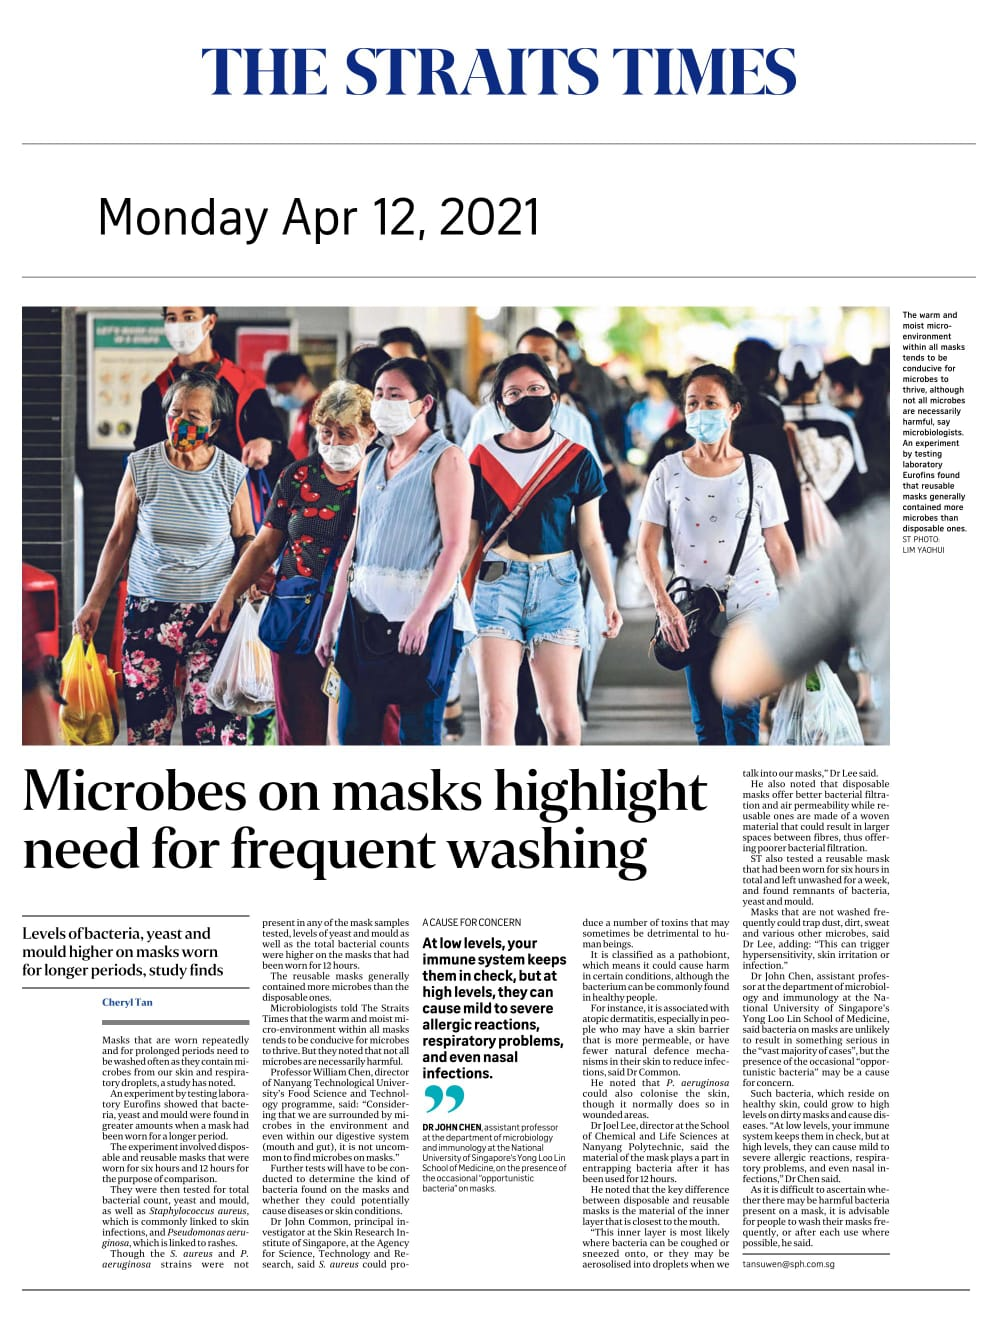 Microbes on masks highlight need for frequent washing - Published in The Straits Times April 12, 2021